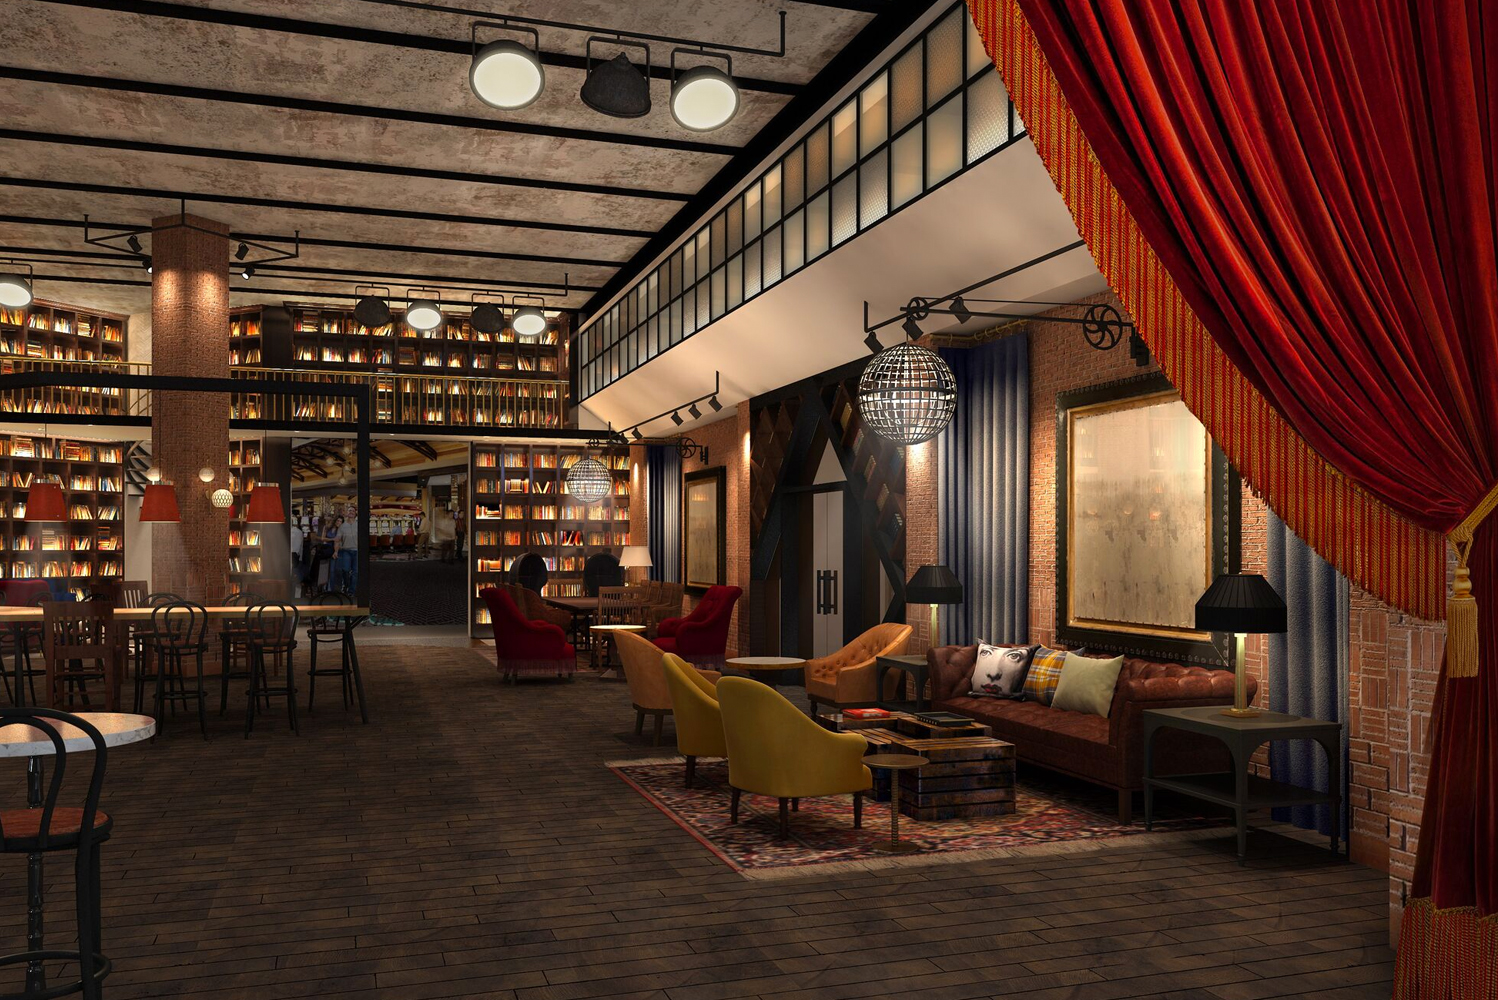 MGM Springfield's design will celebrate the region's past. Photo credit: MGM Resorts International